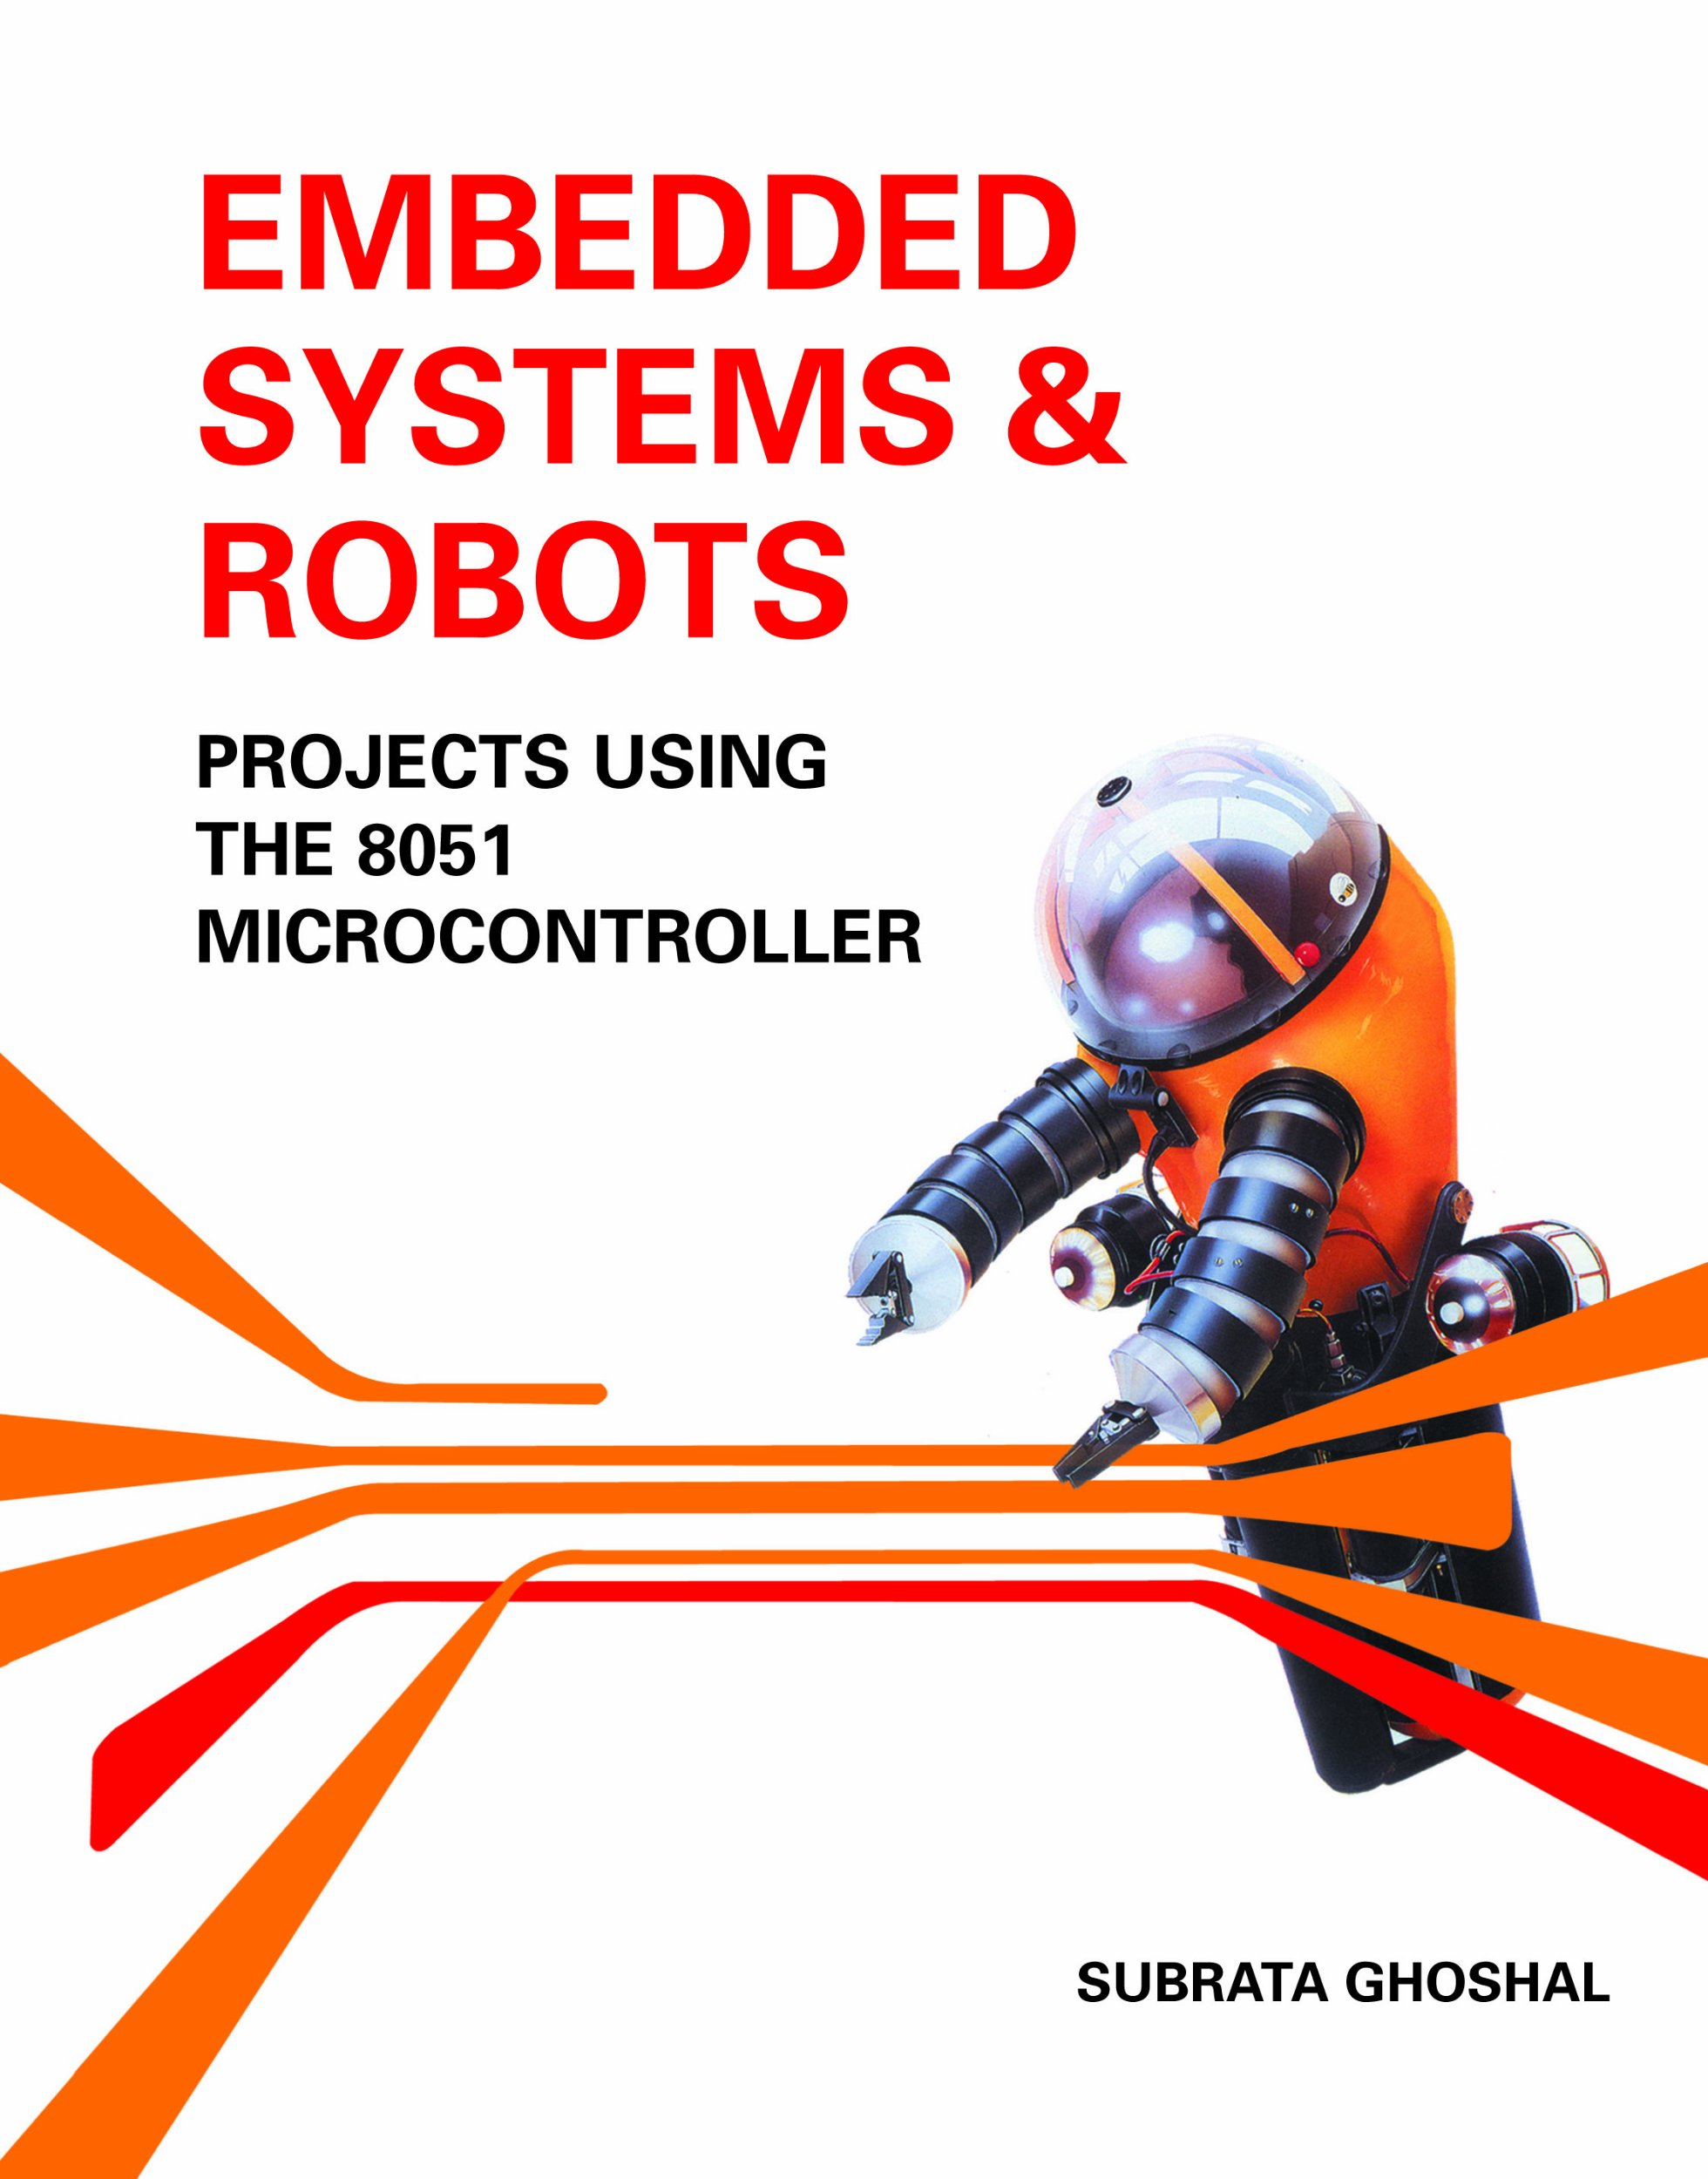 Embedded Systems Robots Projects Using The 8051 Microcontroller Diagram Subrata Ghoshal 9789814272896 Books